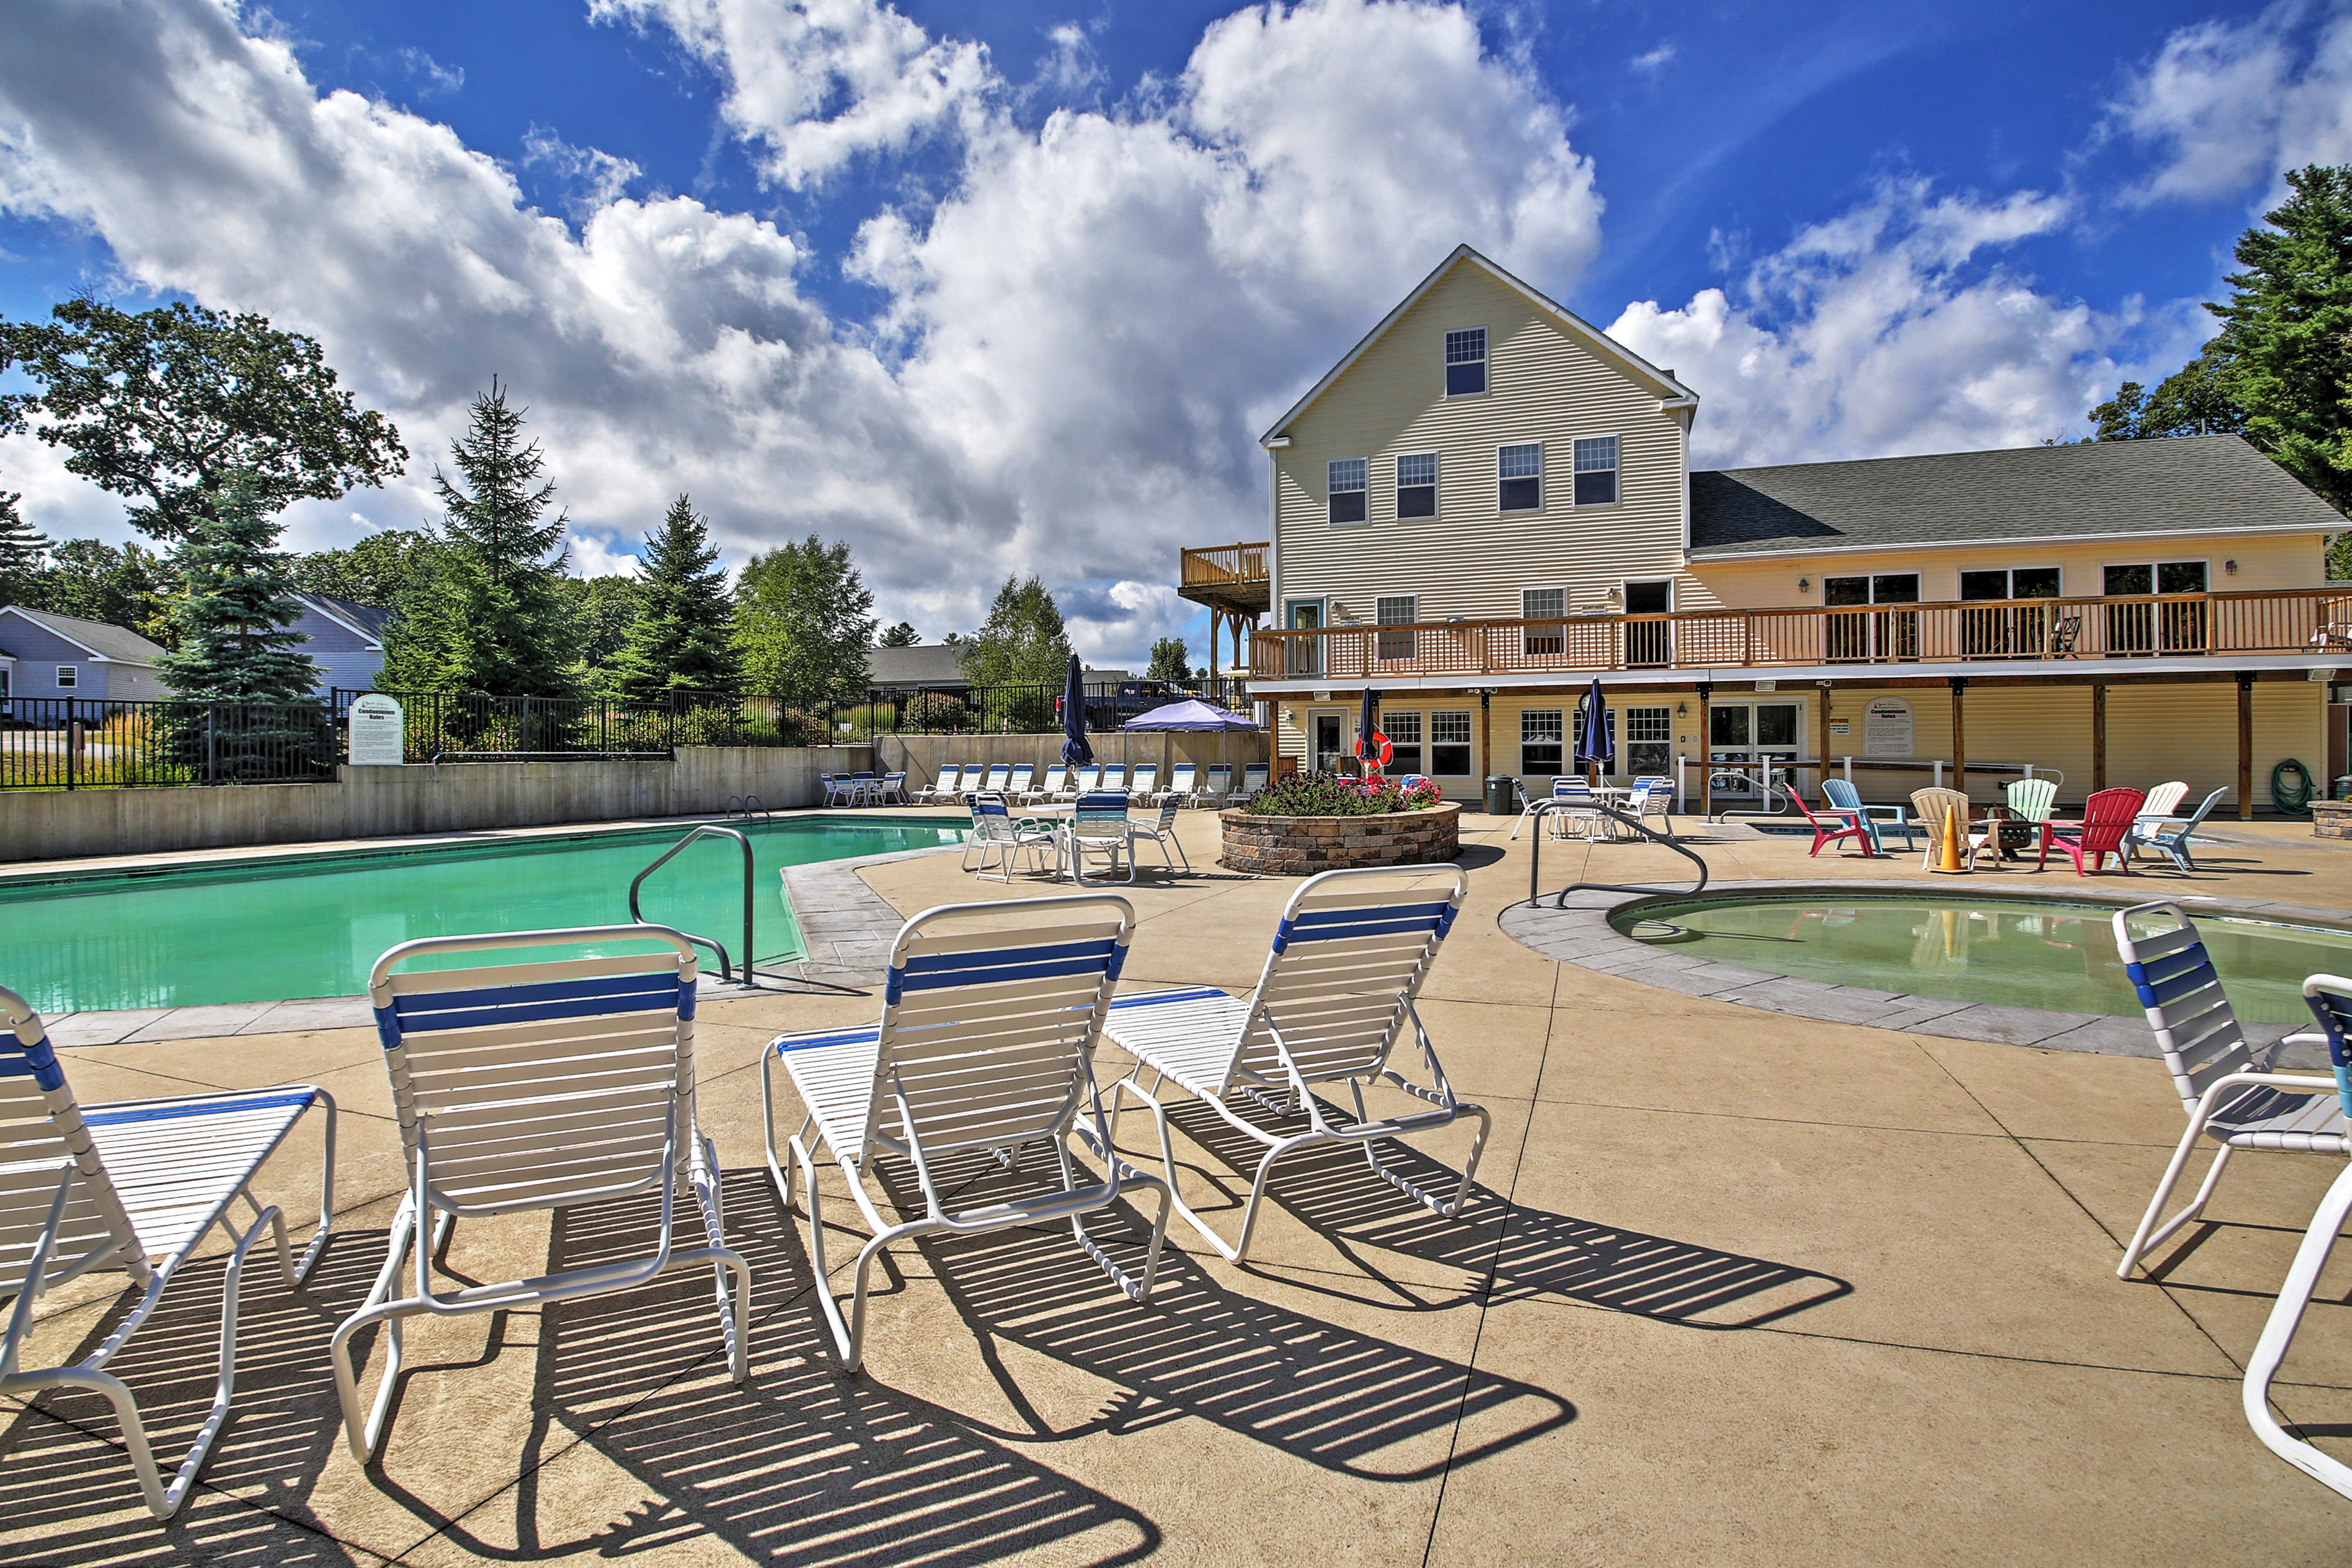 Take a dip in the community pool.